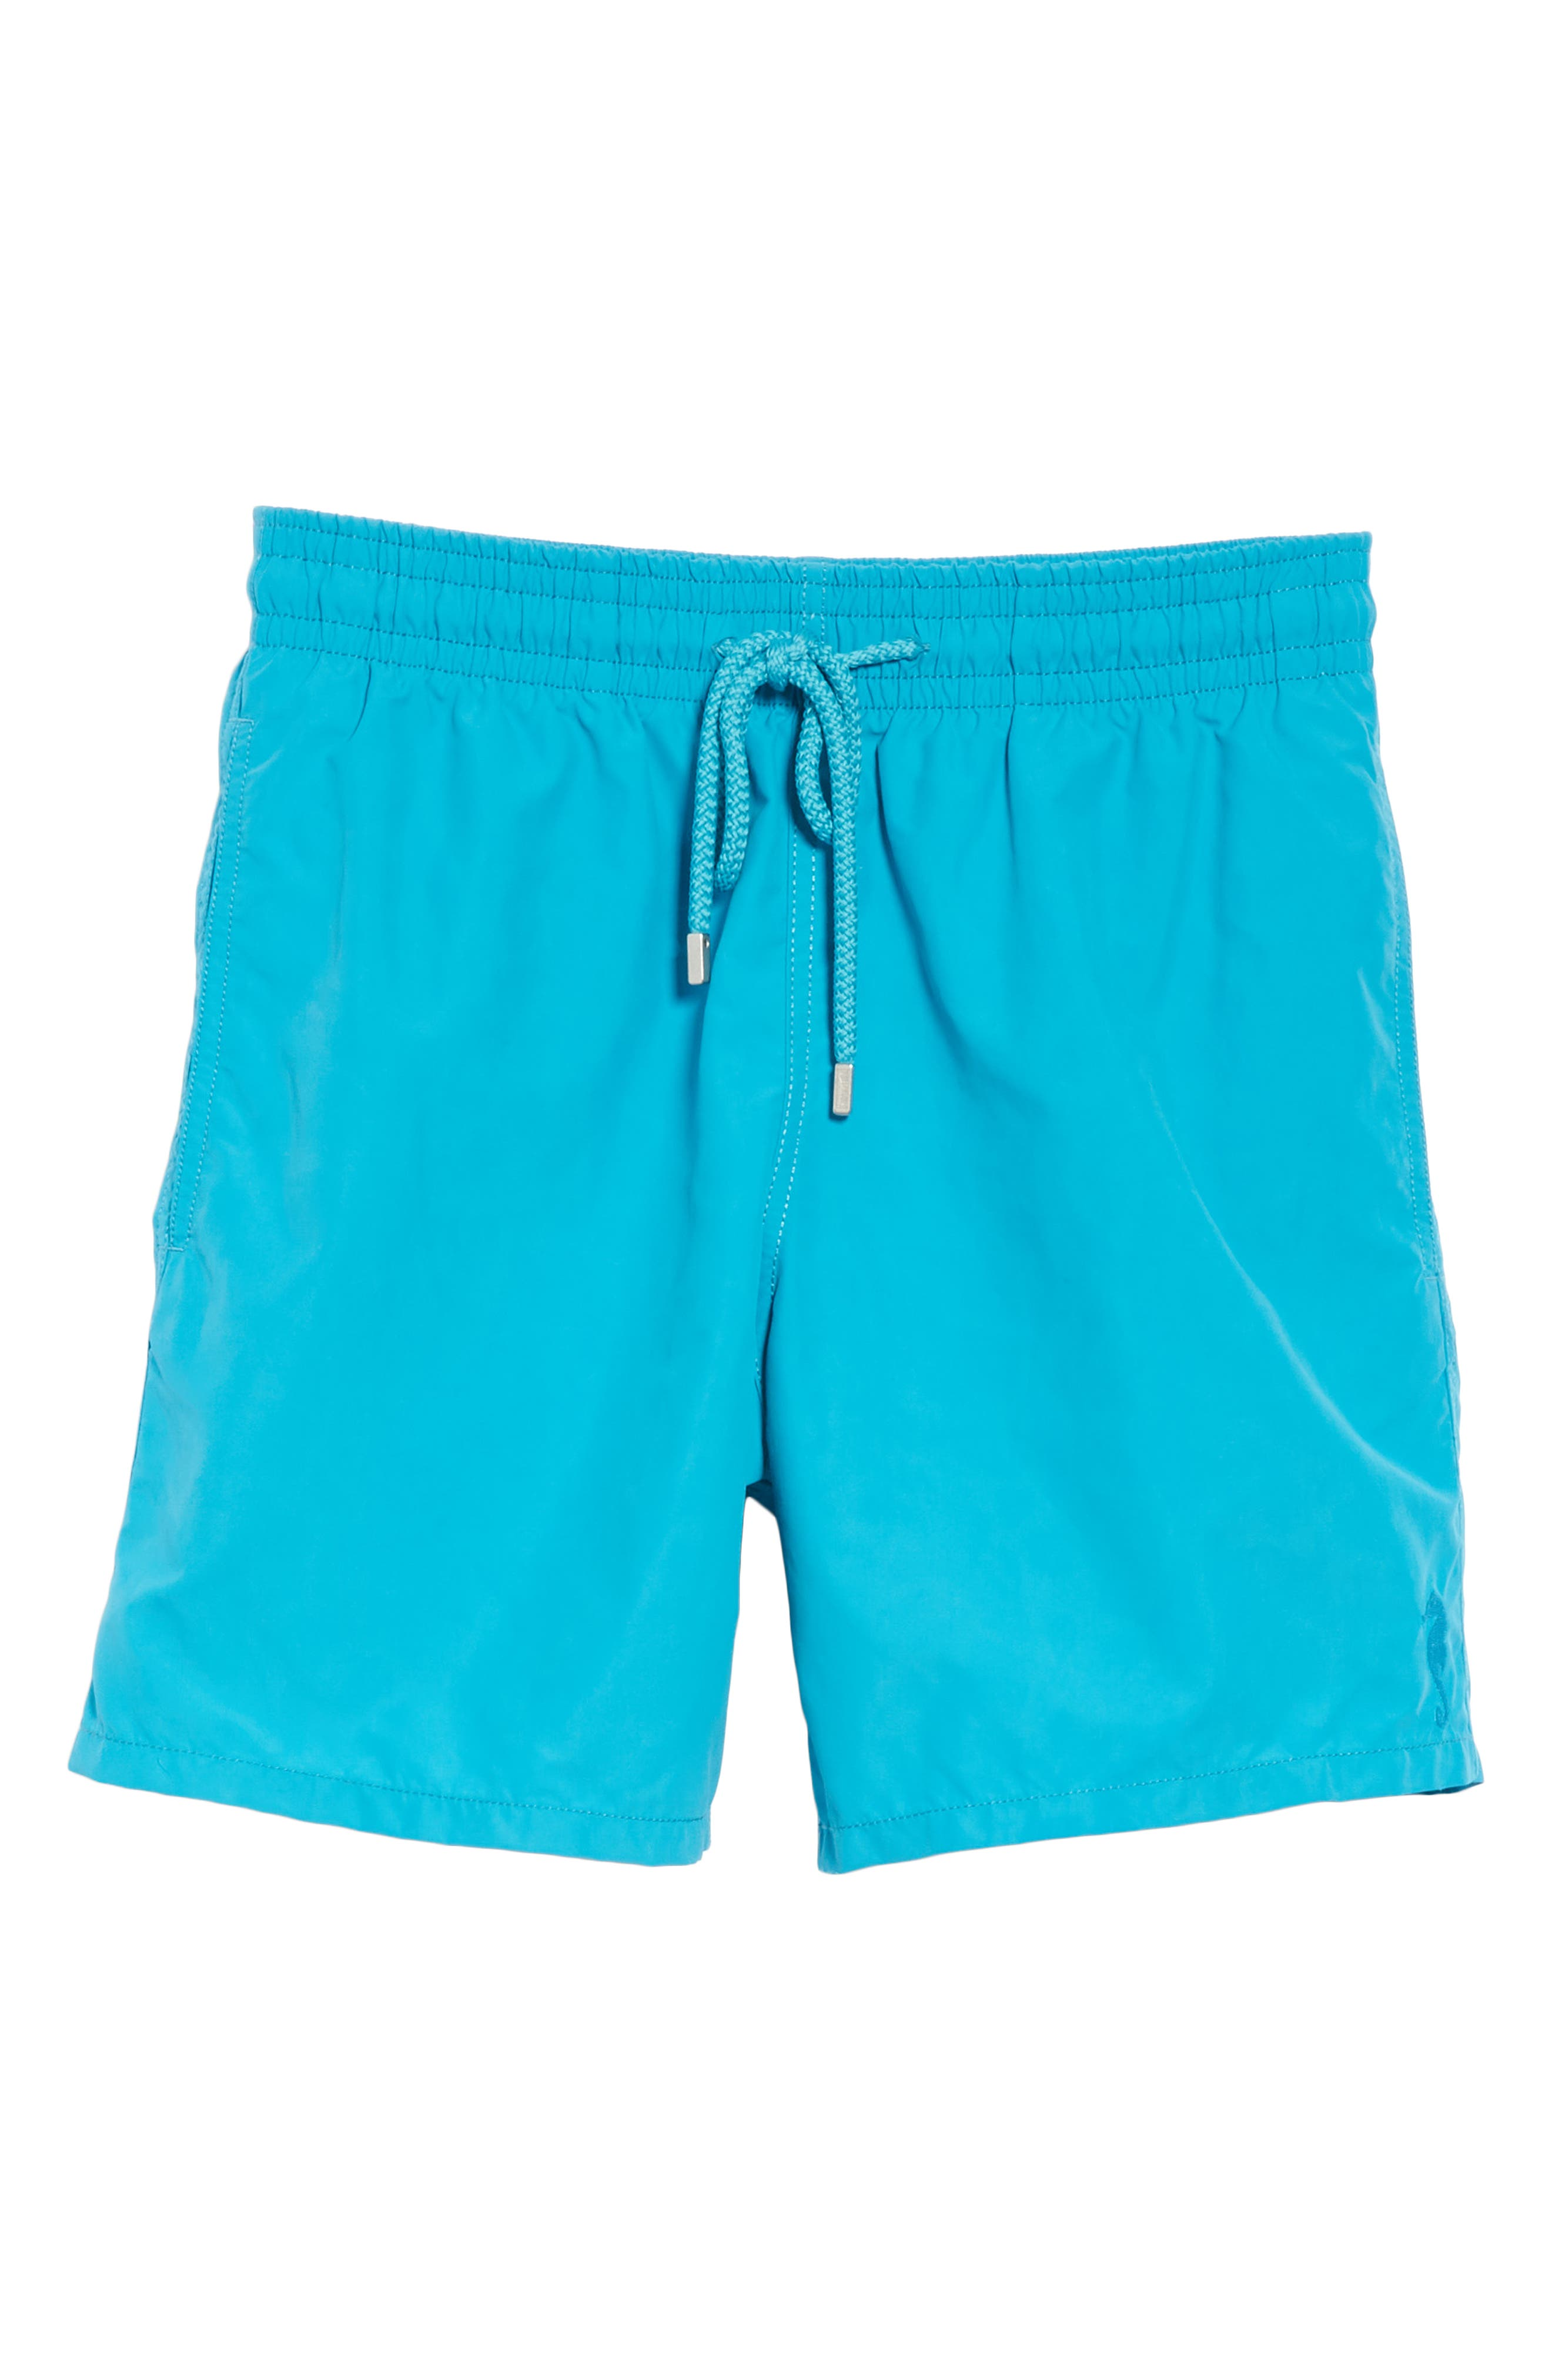 Moorea Double Focus Water-Reactive Swim Trunks,                             Alternate thumbnail 6, color,                             BLUE